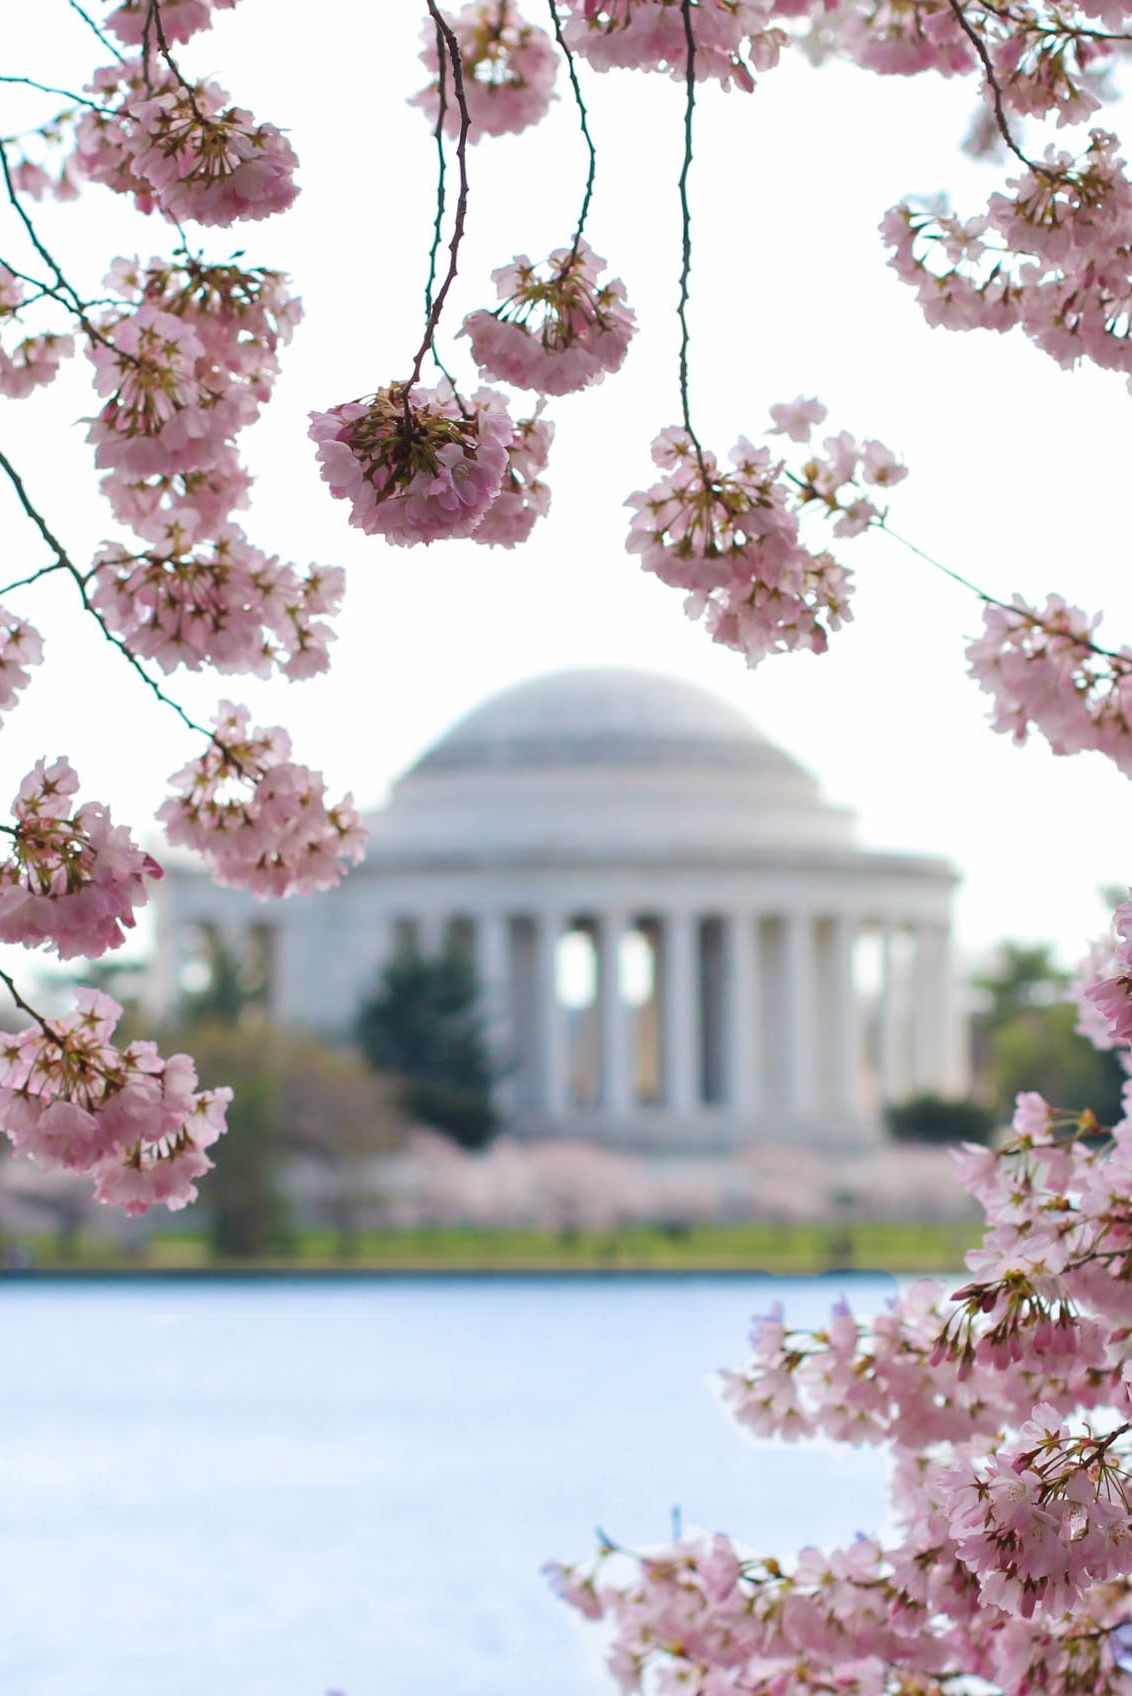 Cherry blossoms in Washington DC Jefferson Memorial